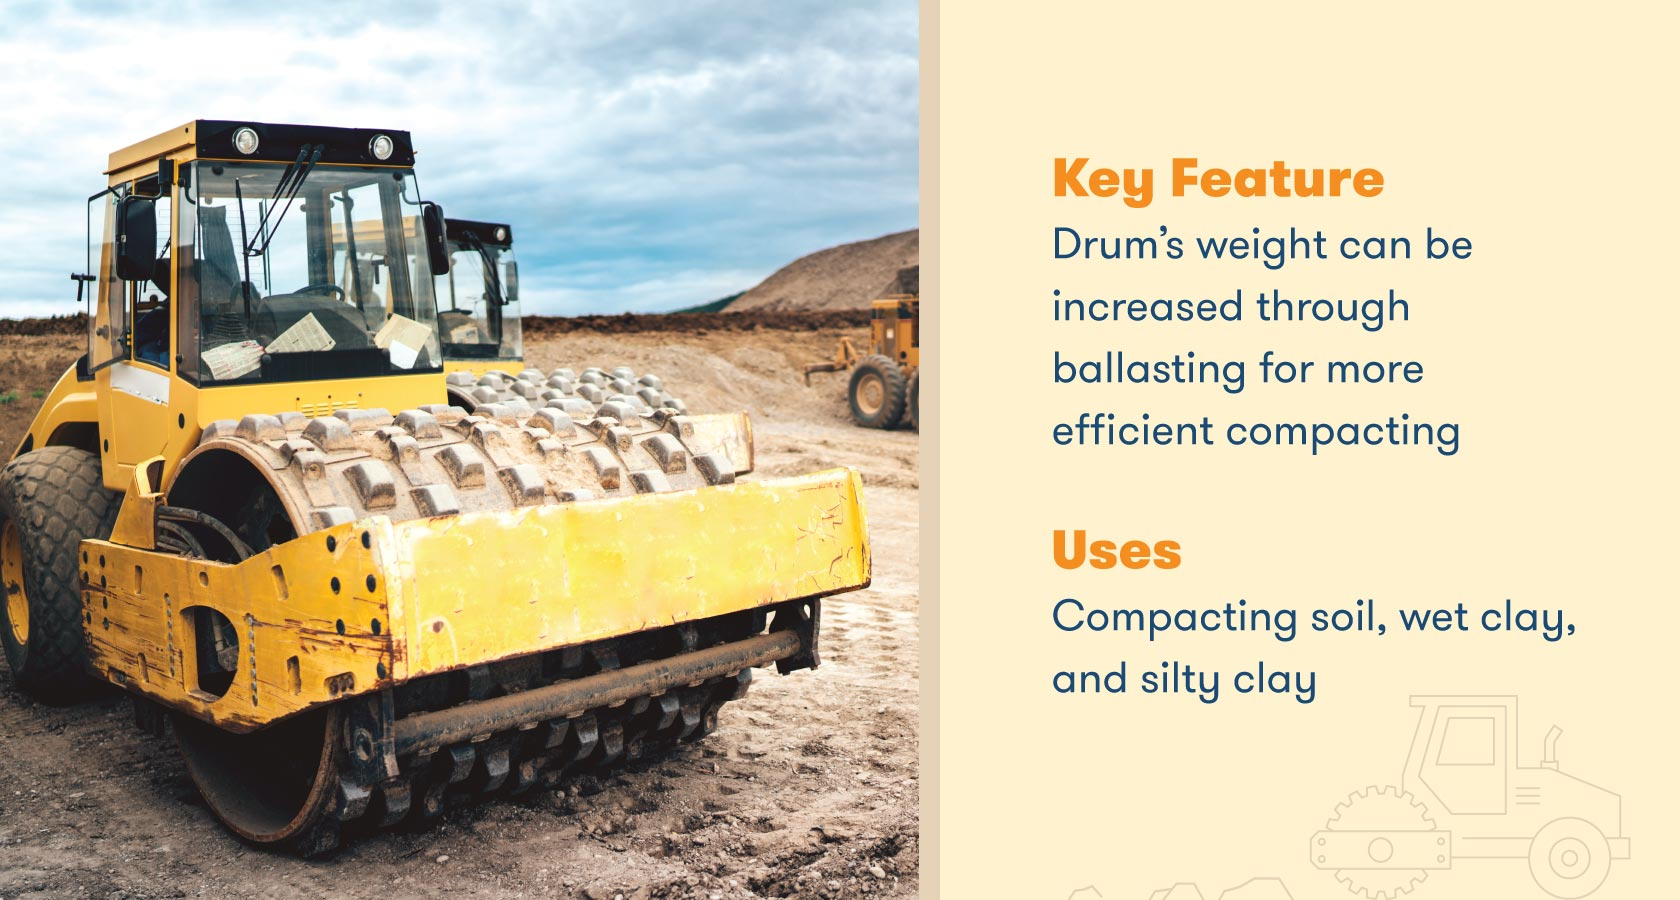 Drum's weight can be increased through ballasting for more efficient compacting